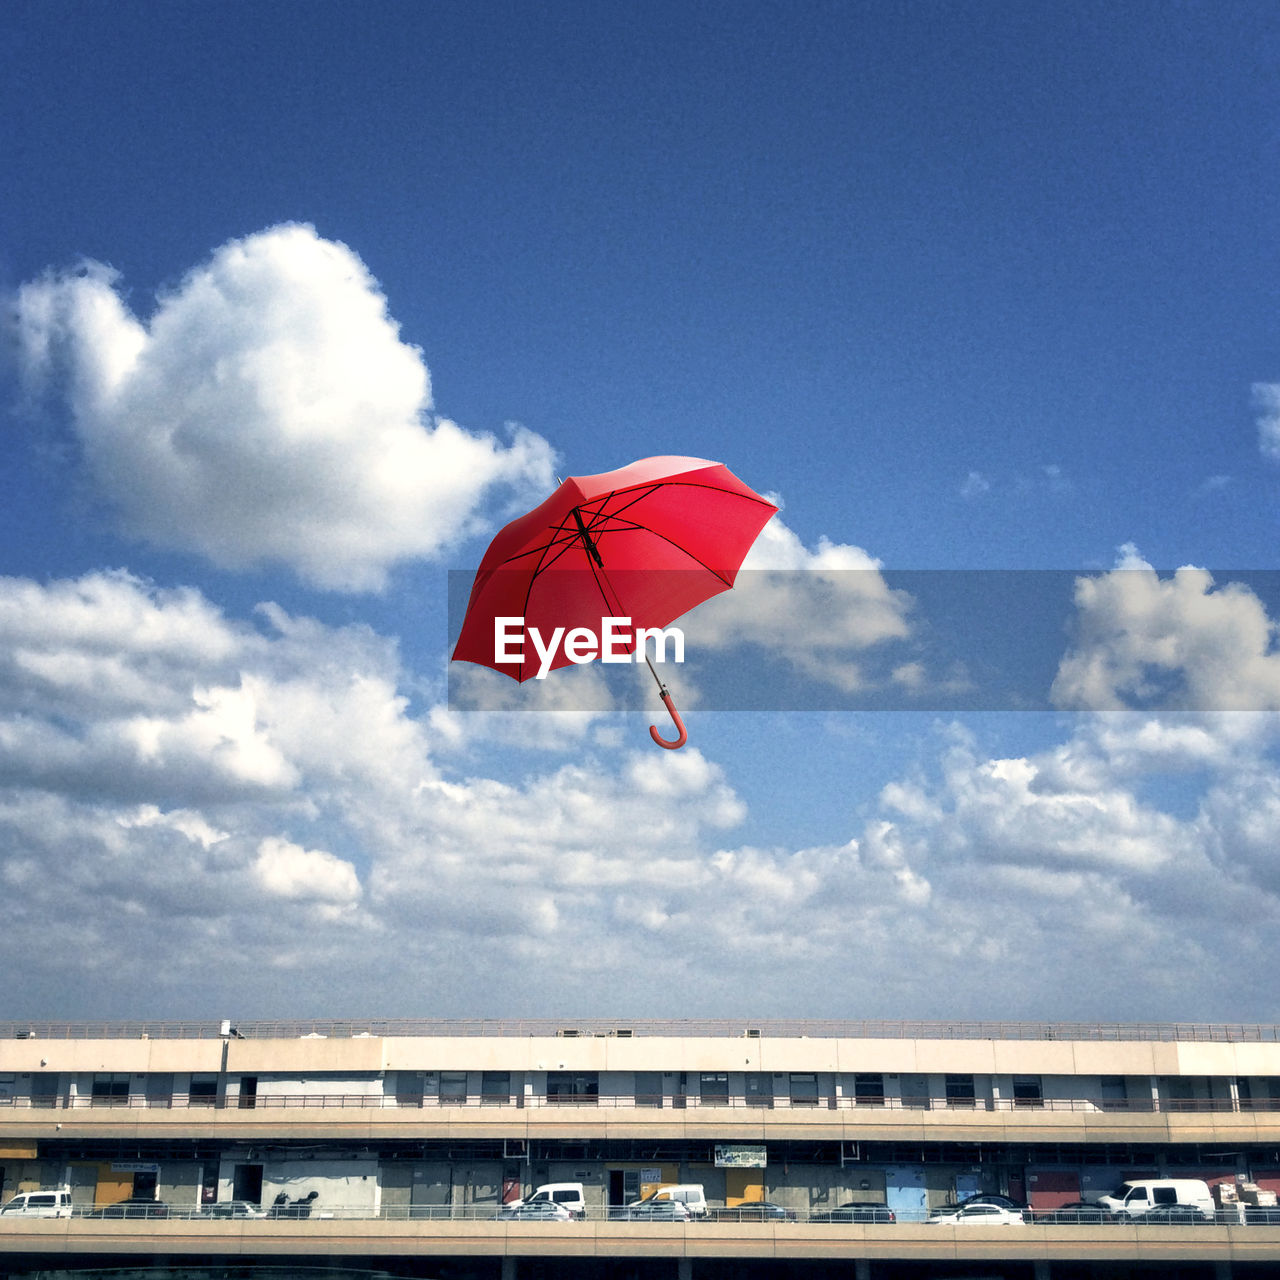 Low angle view of red umbrella in mid-air against sky